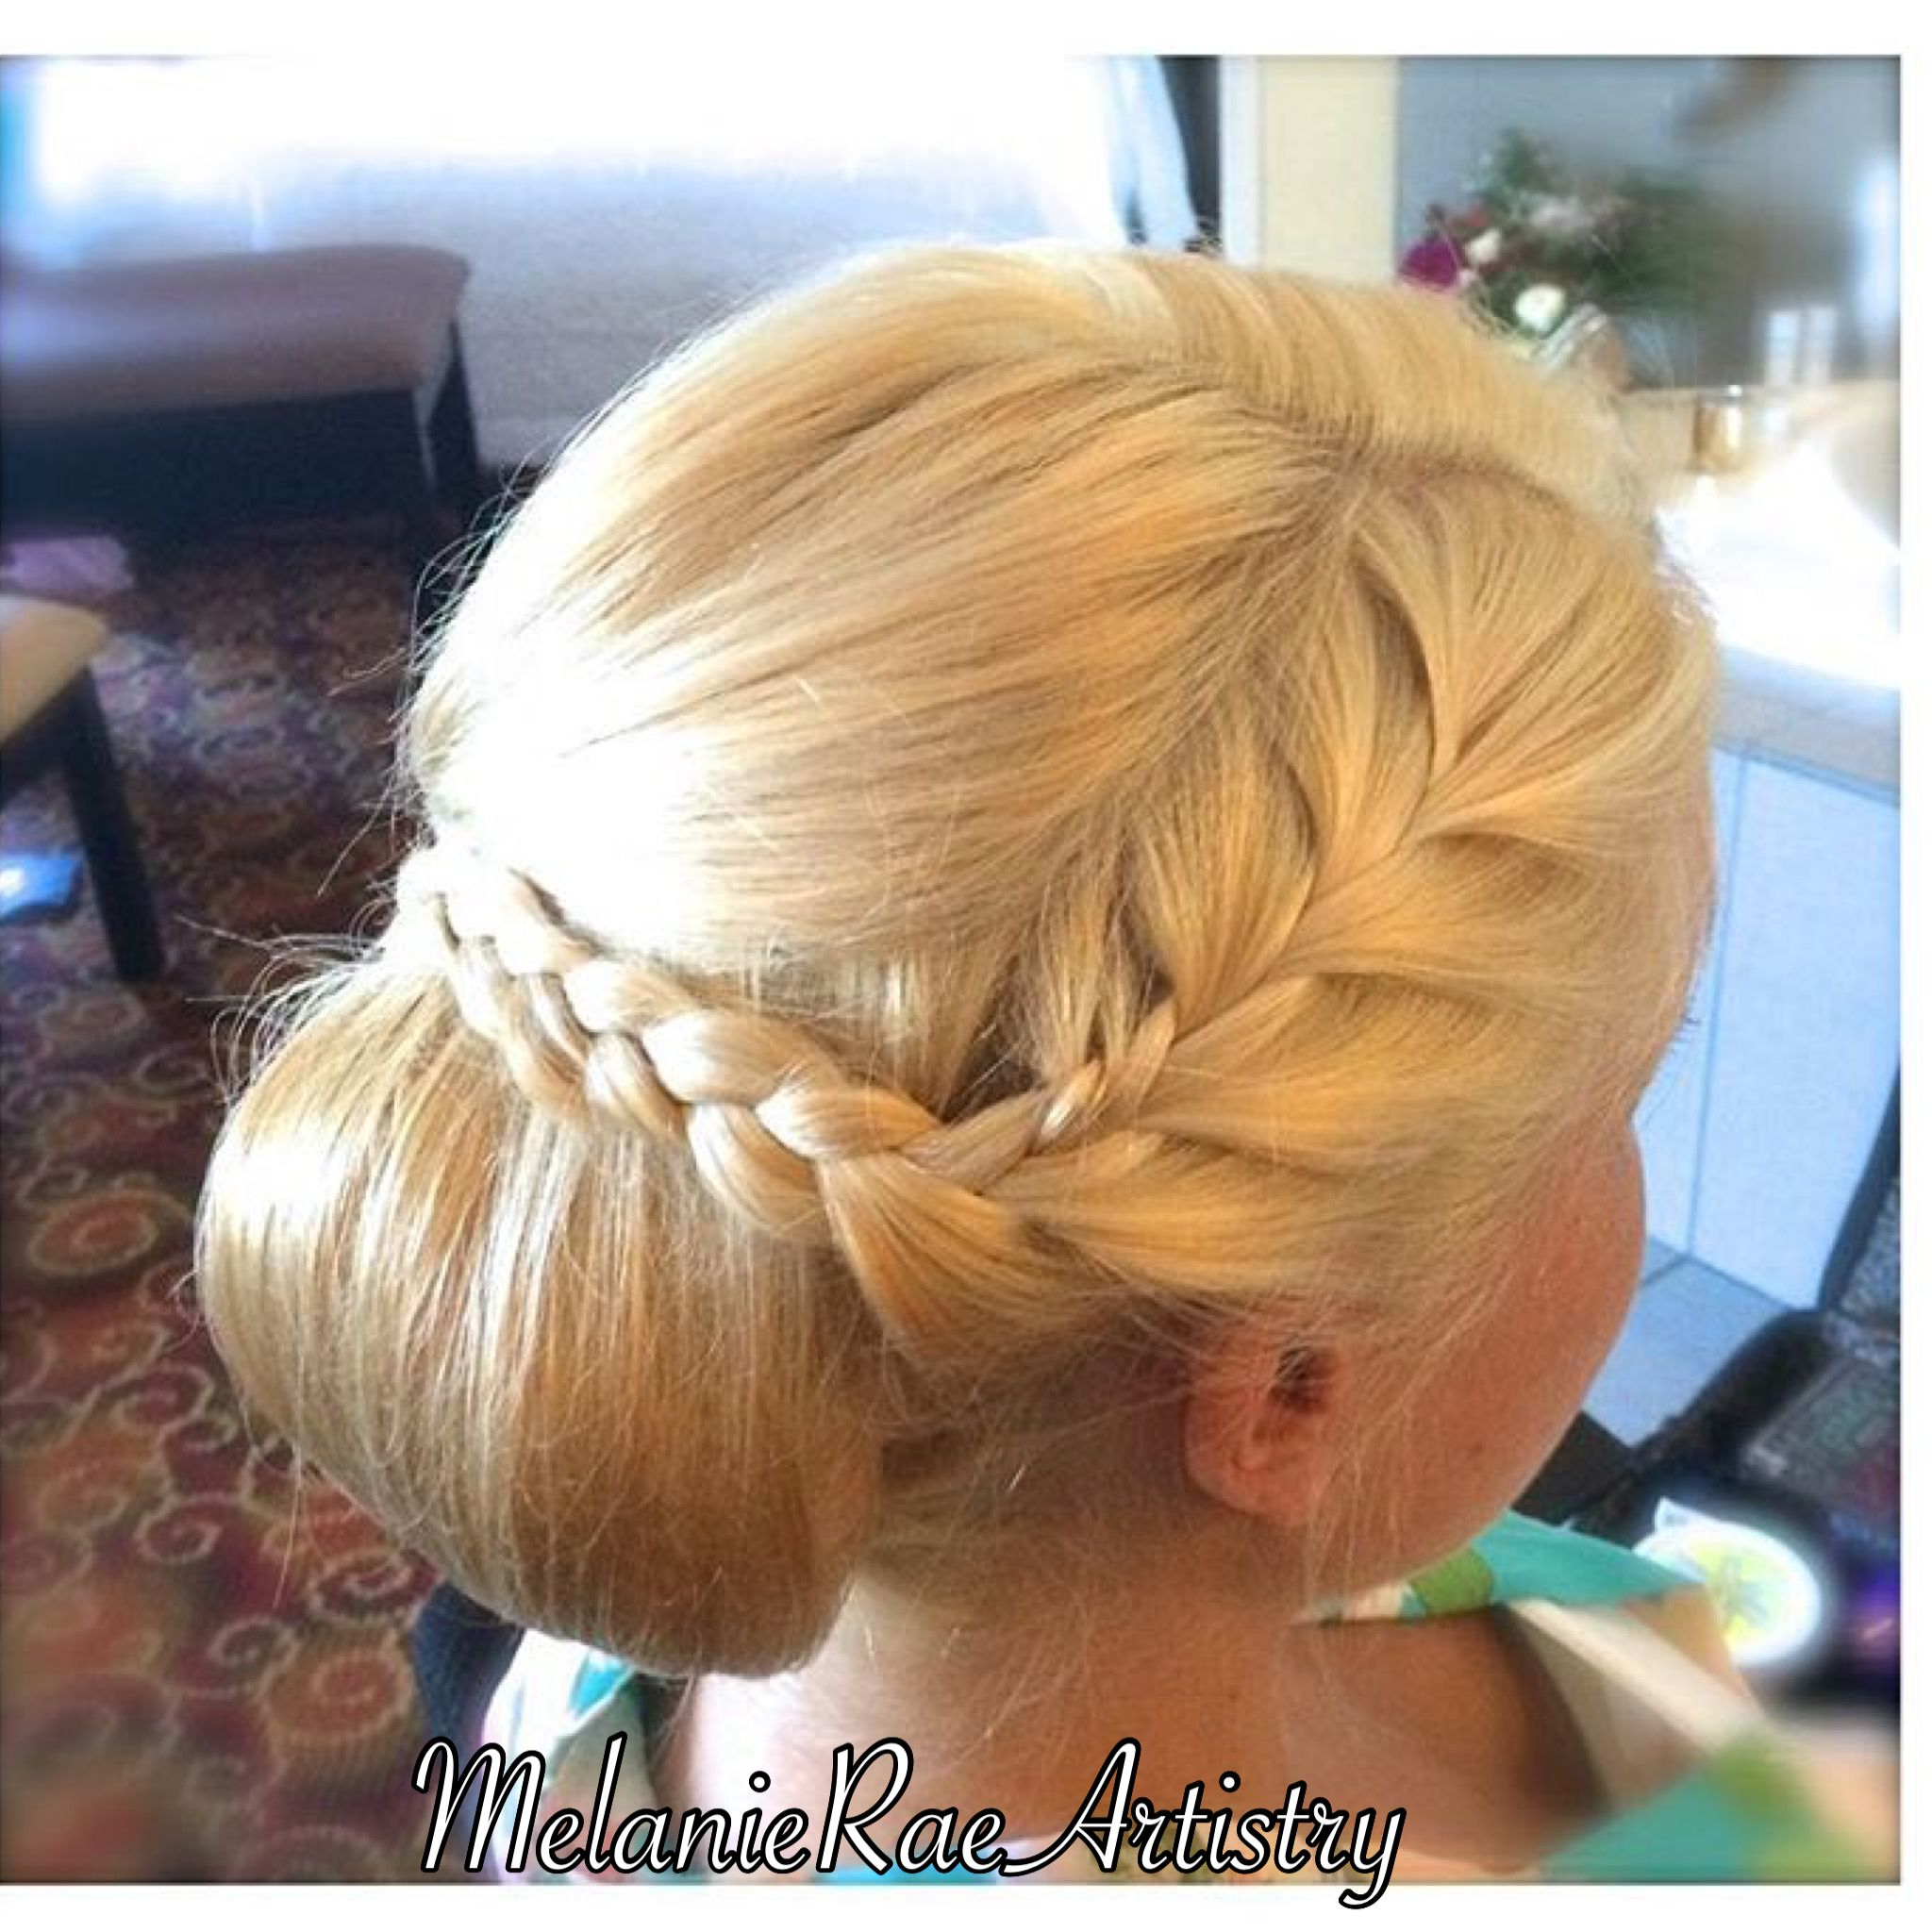 Braided updo bun hairstyle south jersey bridal hair and makeup